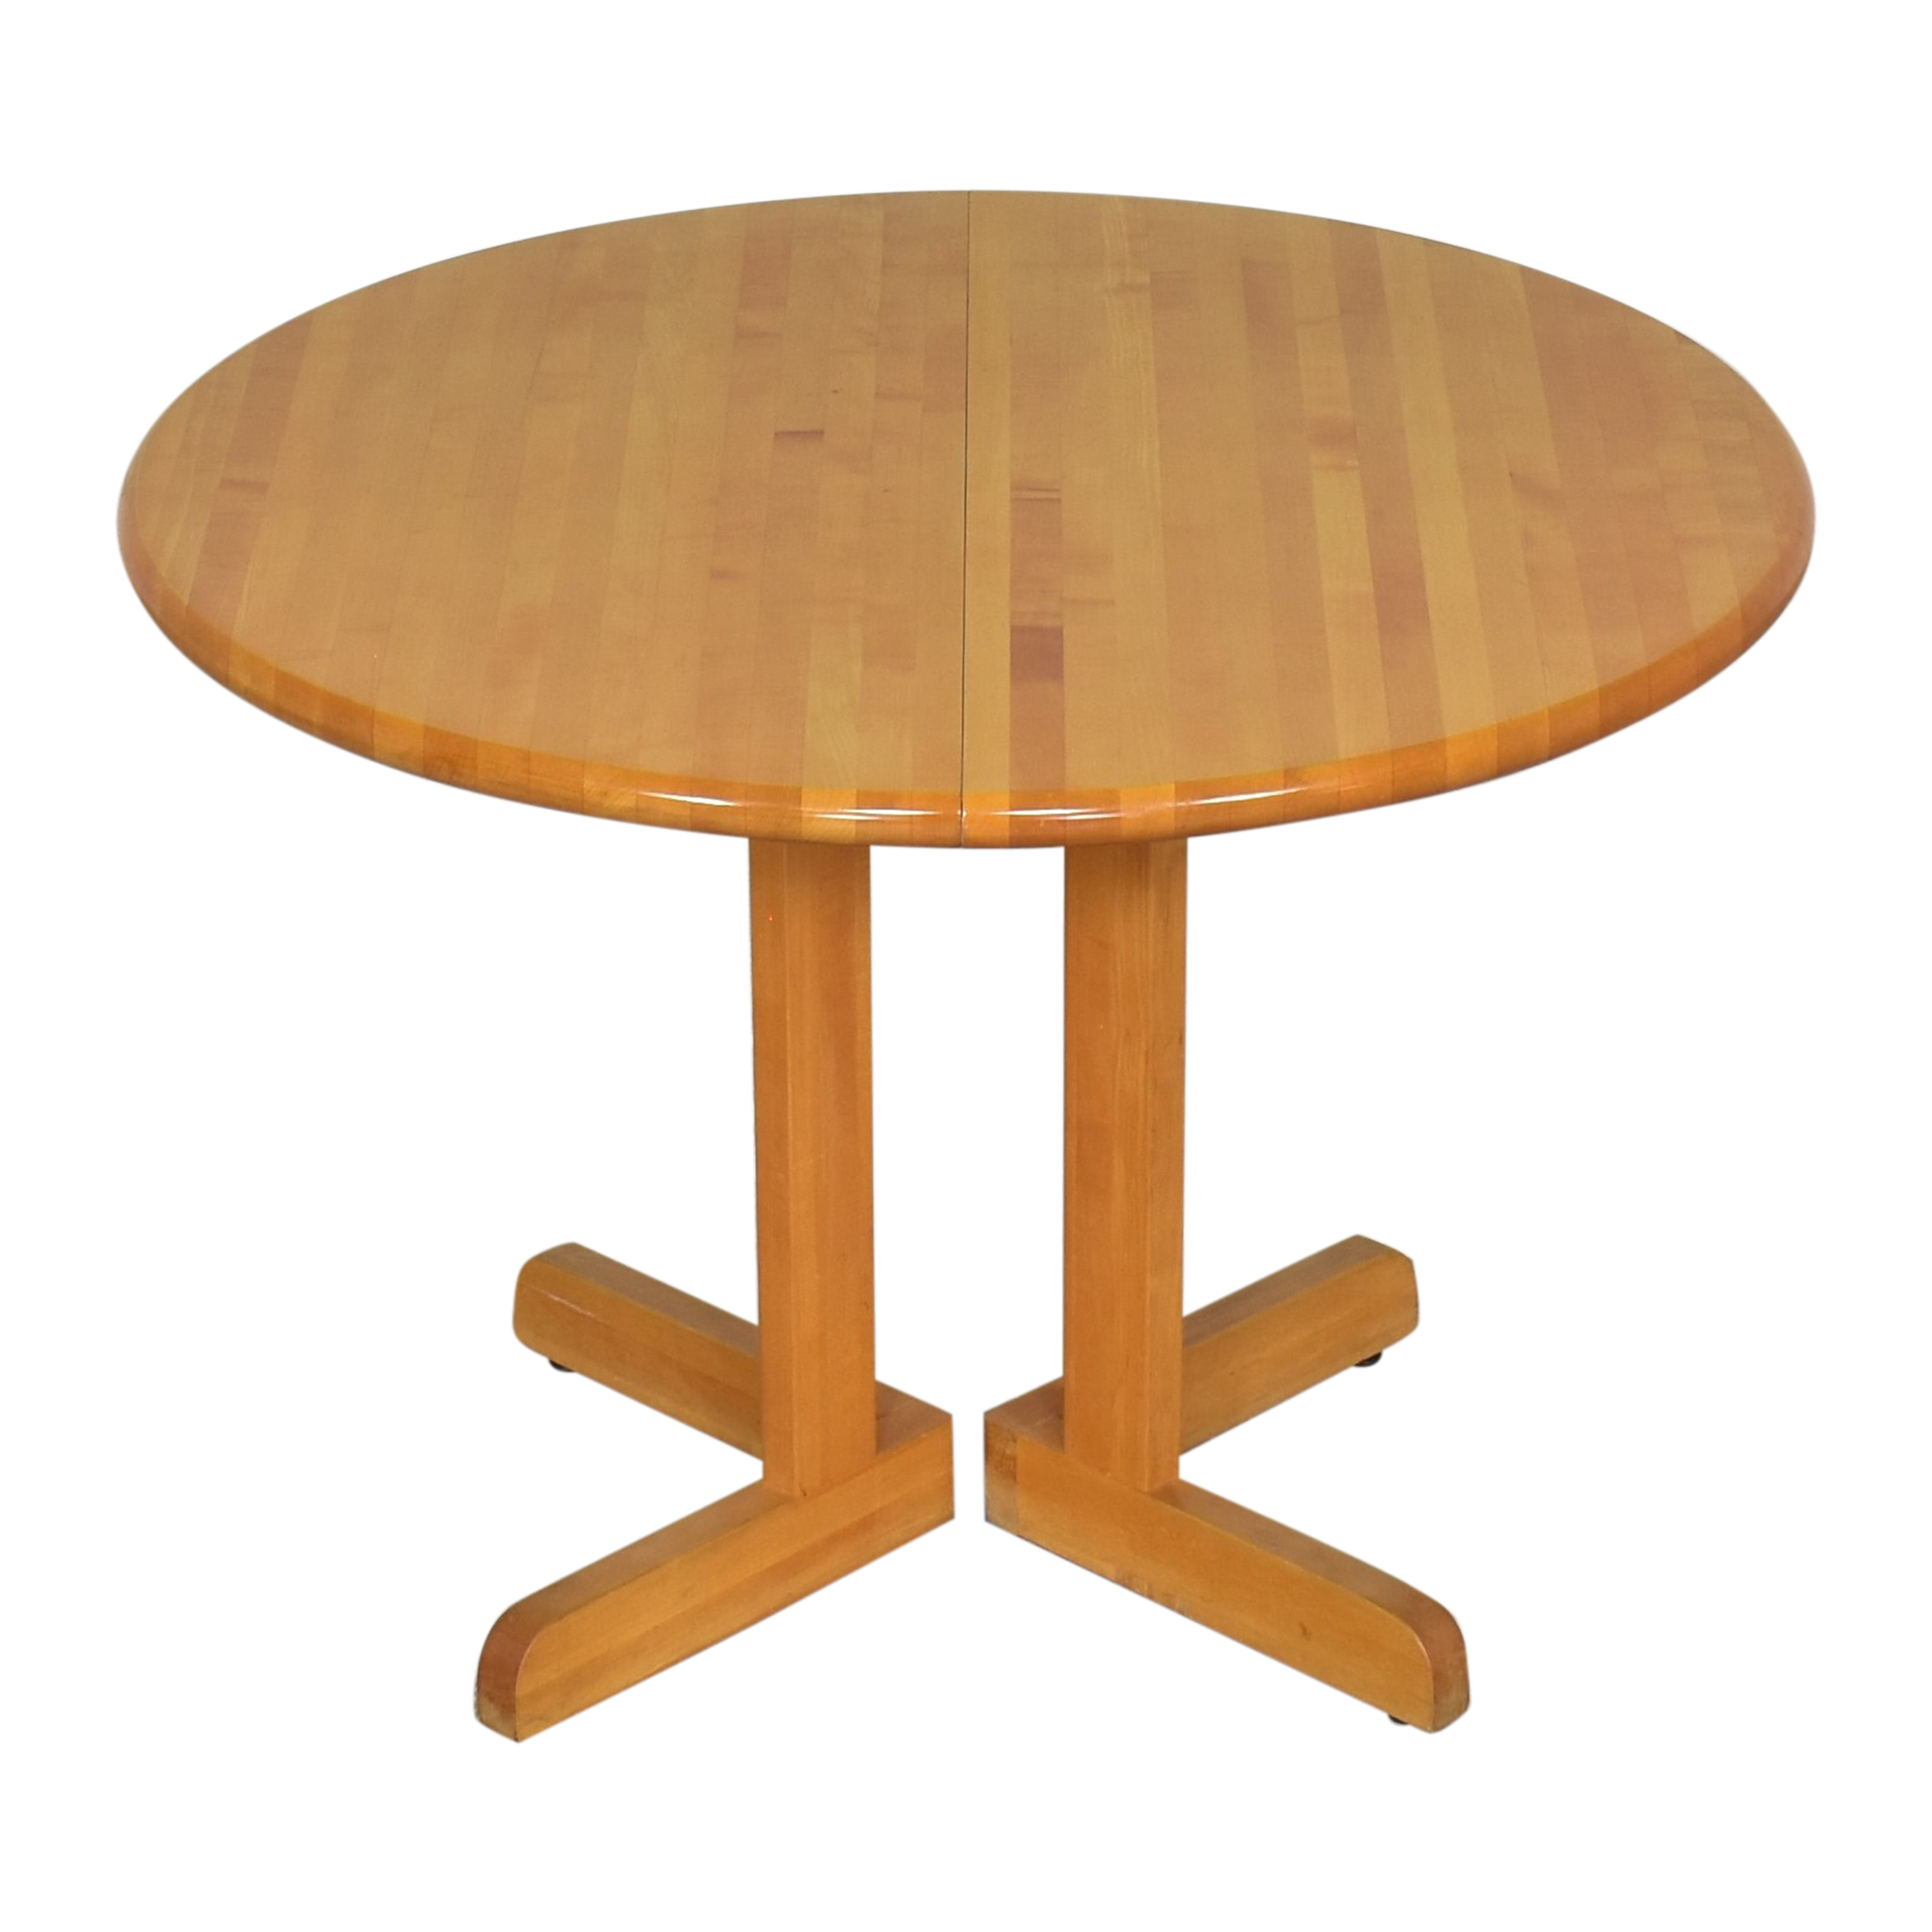 Walter of Wabash Walter of Wabash Round Extendable Dining Table used